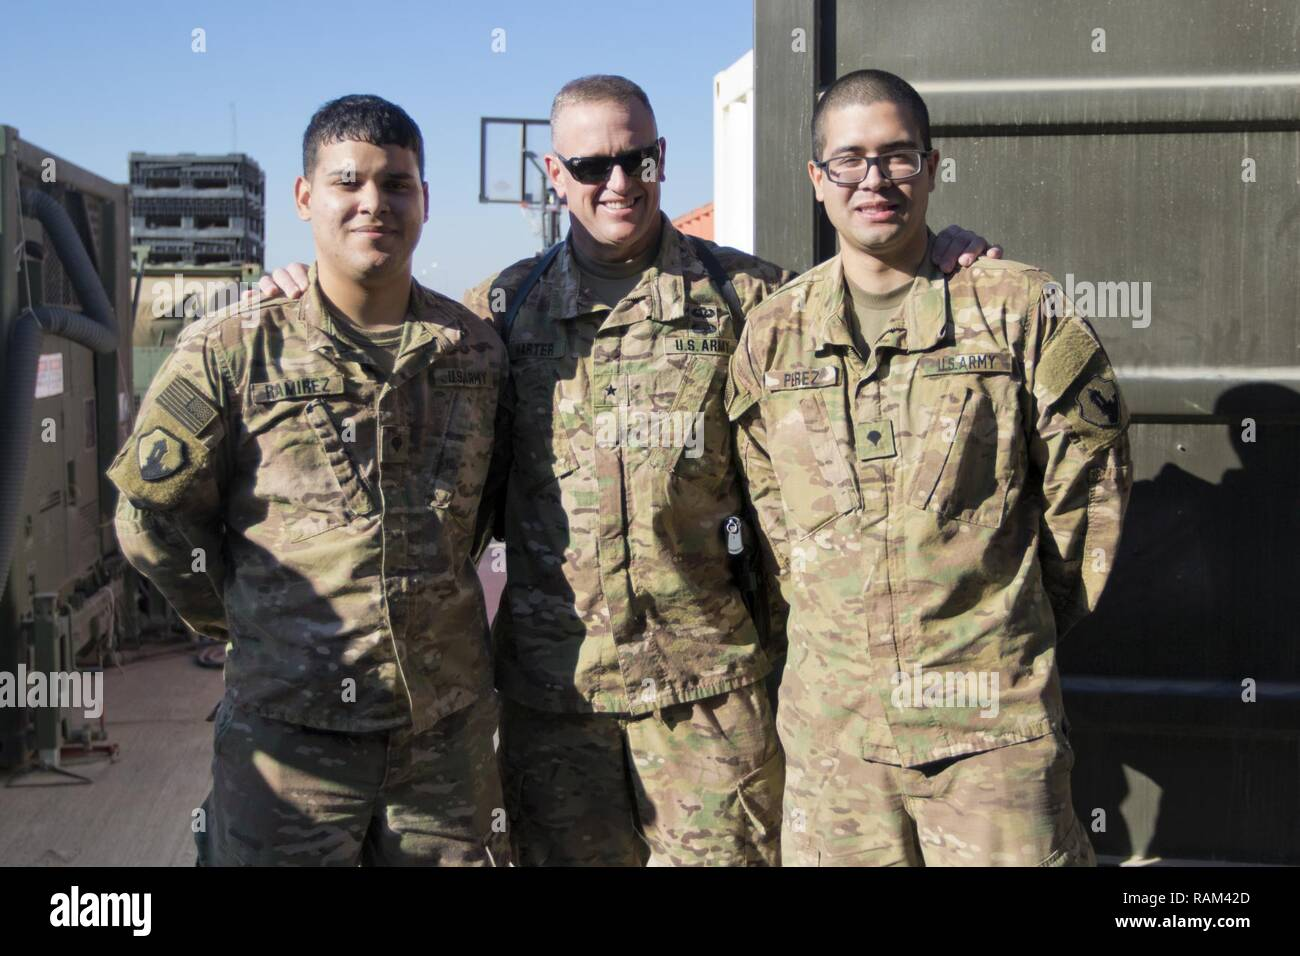 Brig. Gen. Robert D. Harter, deputy commanding general of the 1st Sustainment Command (Theater) / commanding general of the 316th Sustainment Command (Expeditionary), (center), poses with Spc. Brian Ramirez, (left), and Spc. Jose Perez, (right), both mortuary affairs specialists with the 246th Quartermaster Company (Mortuary Affairs), an U.S. Army Reserve unit based out of Mayaguez, Puerto Rico, in Erbil, Iraq on February 3, 2017. - Stock Image